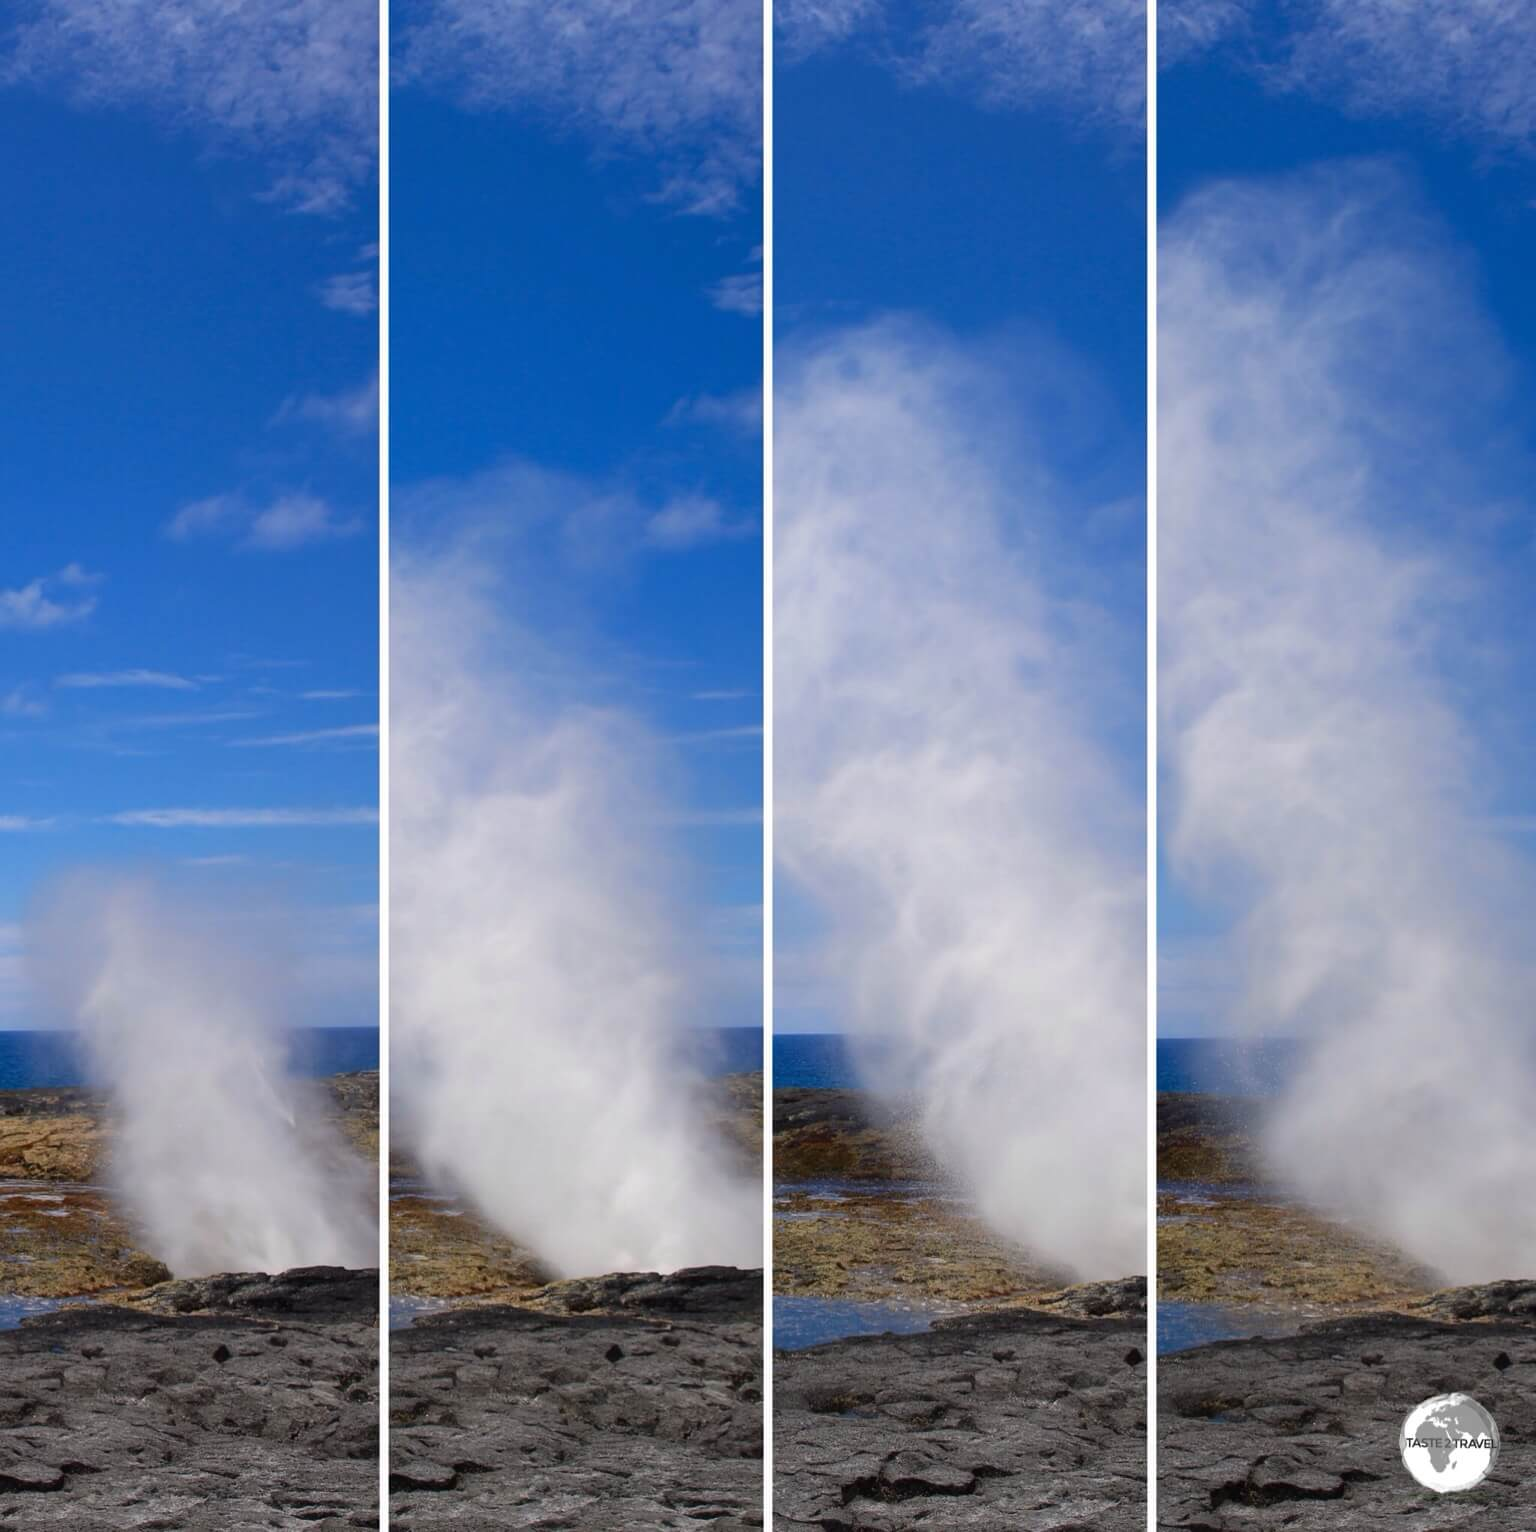 A photo sequence showing the life cycle of a Alofaaga blowhole.